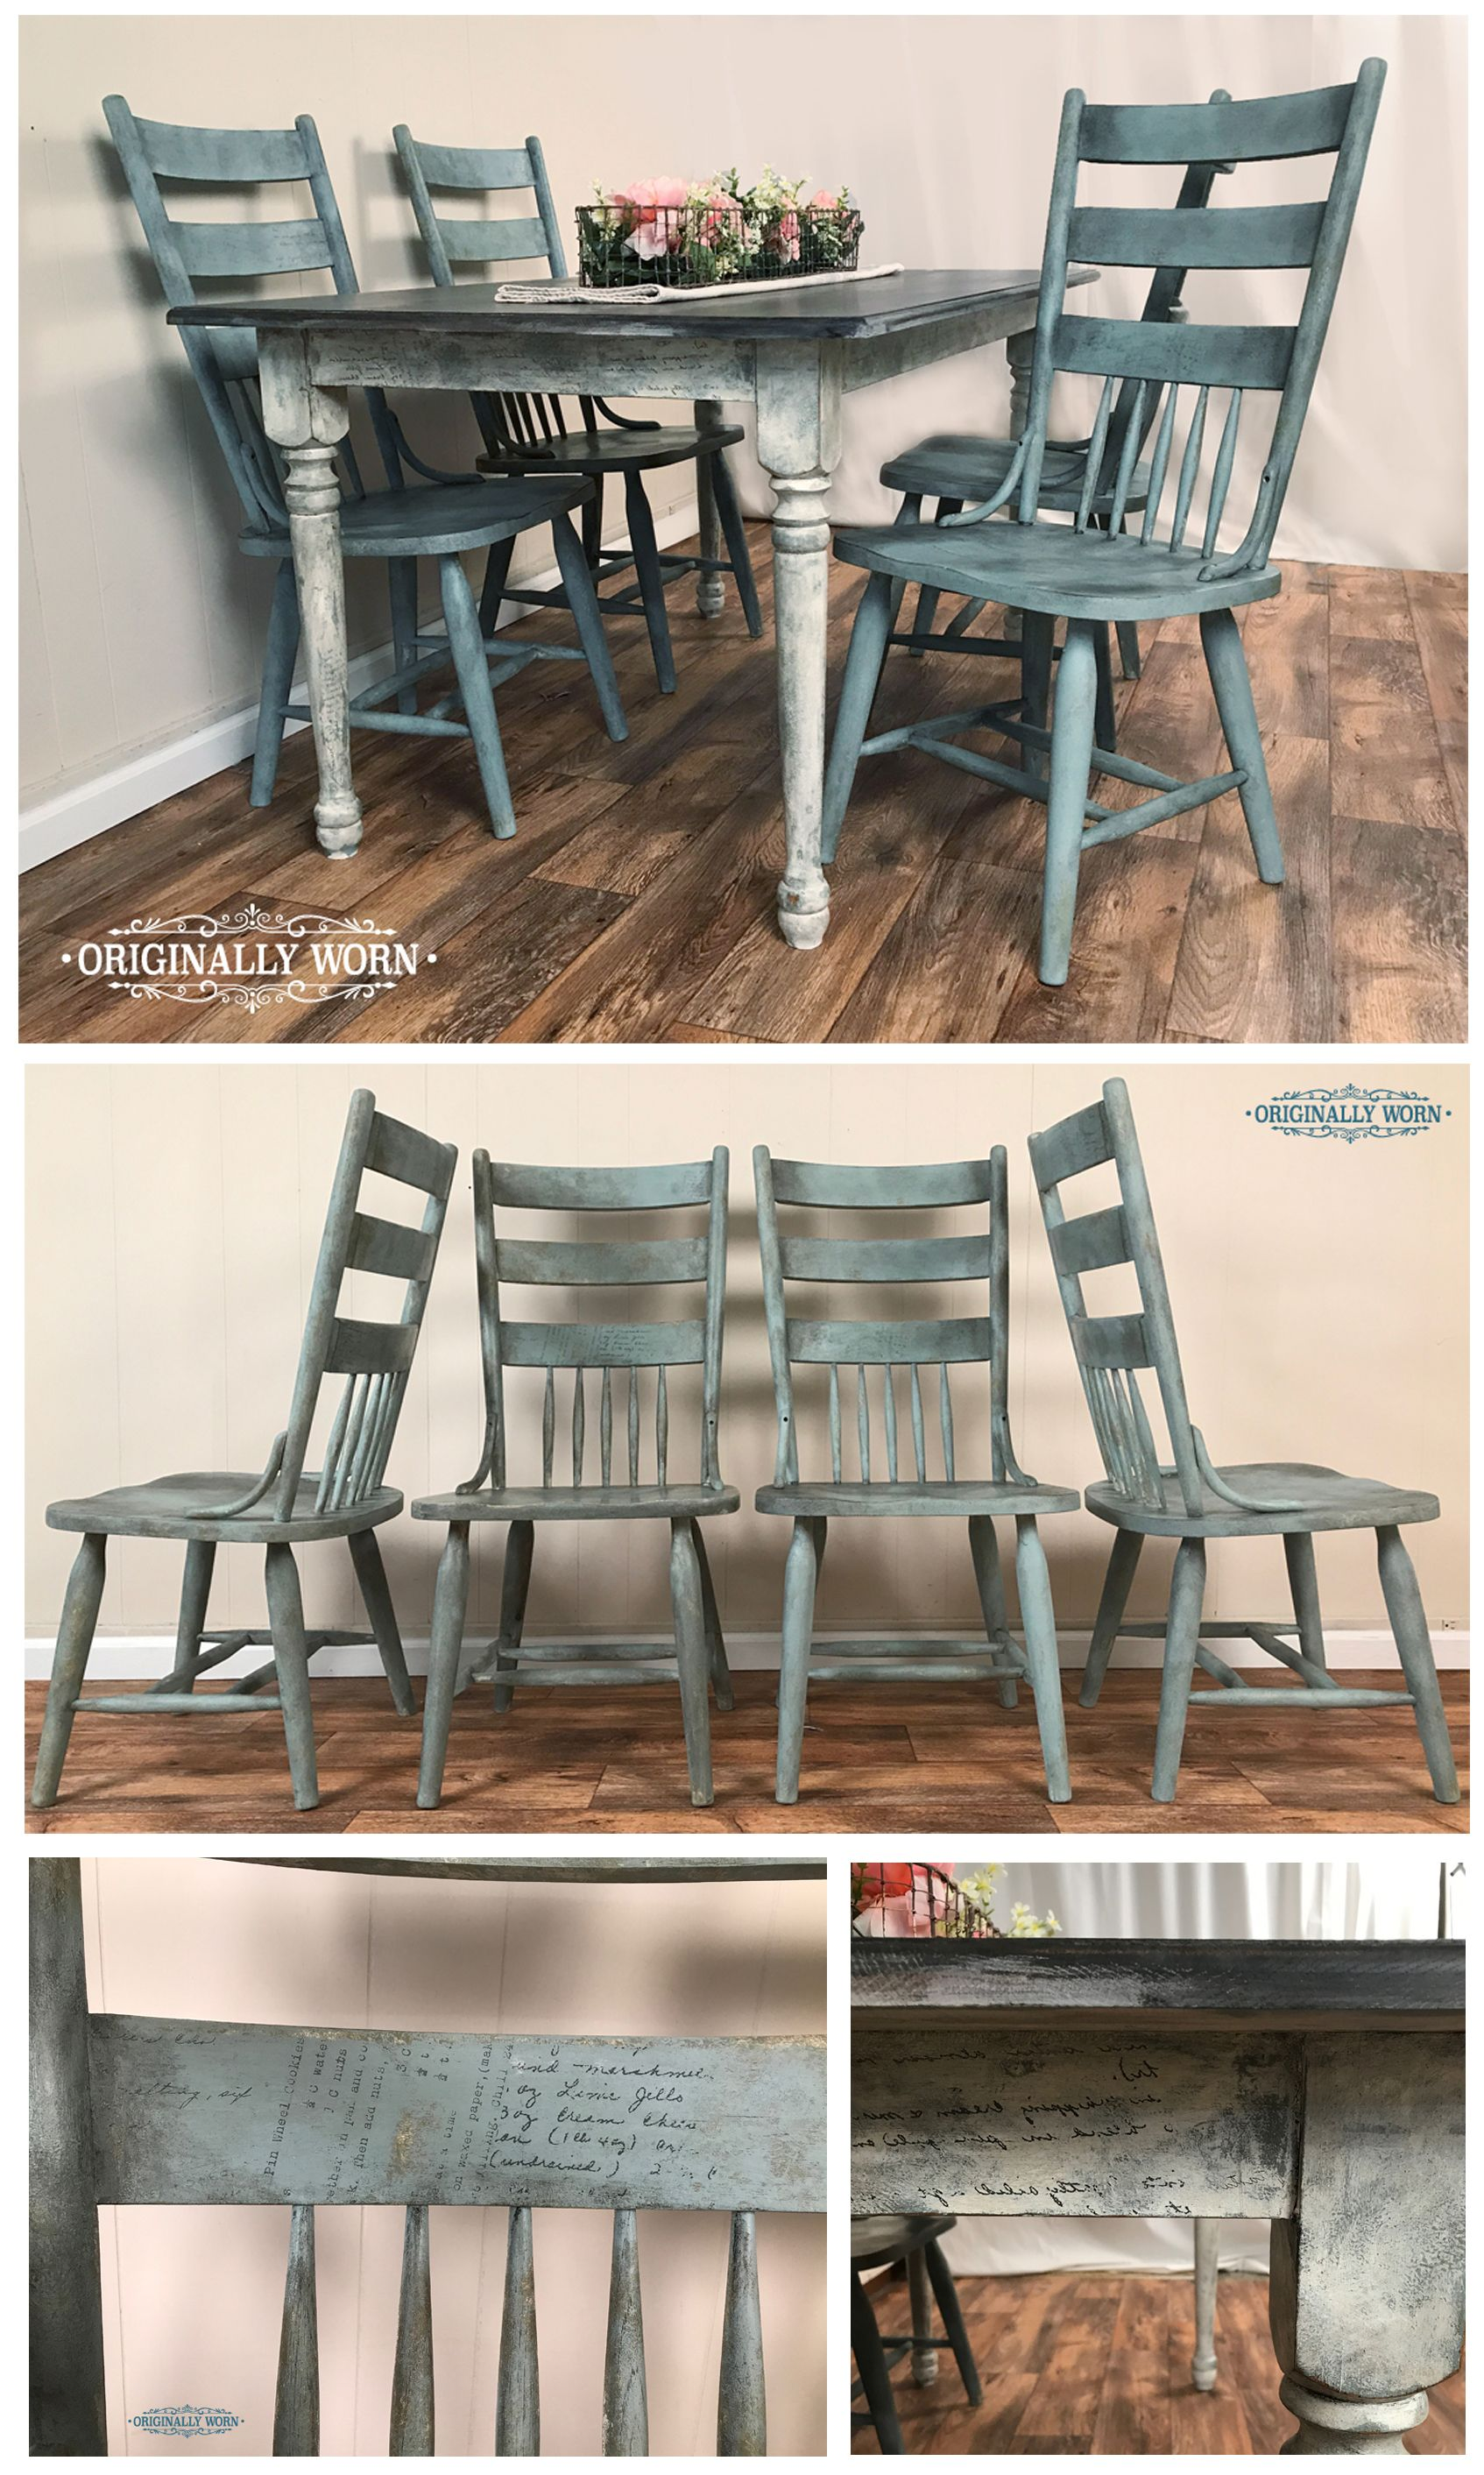 Dining Table And Chairs Done In Chalk Paint By Annie Sloan In Old White Chateau Grey Duc Painted Kitchen Tables Chalk Paint Kitchen Table Kitchen Table Redo